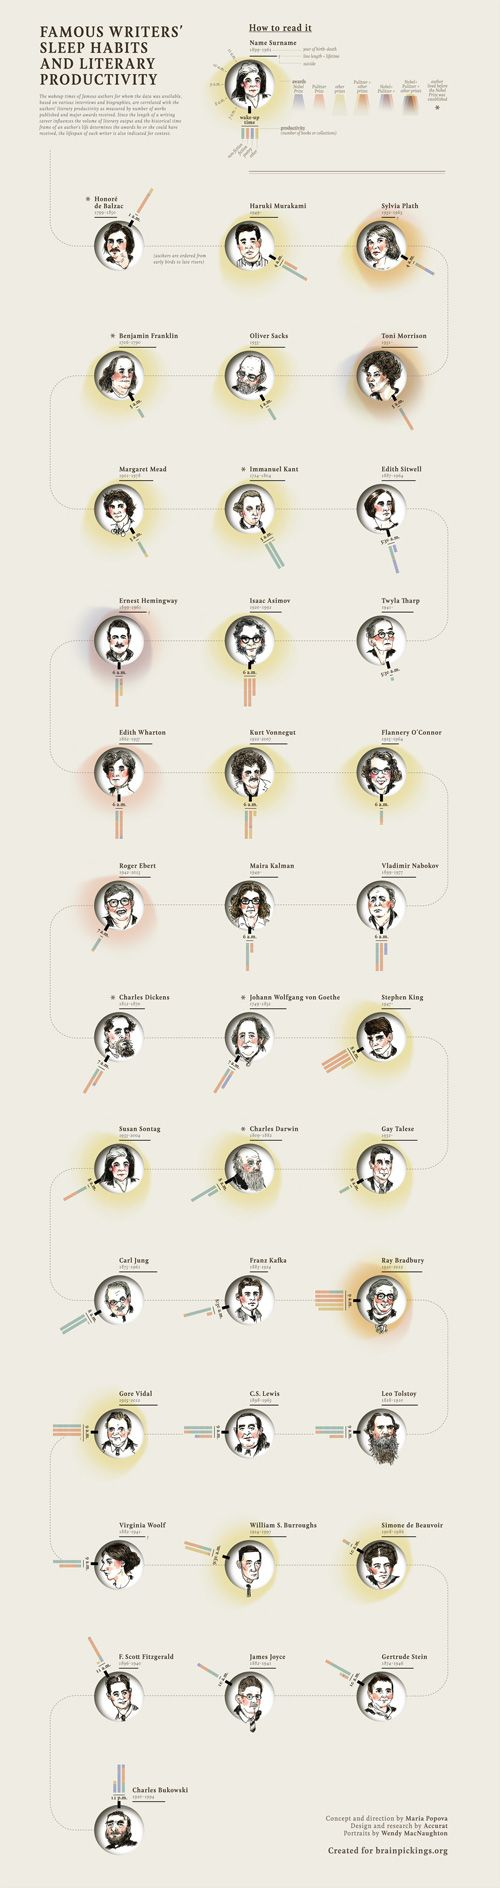 Famous Writers' Sleep Habits vs. Literary Productivity, Visualized | Brain Pickings